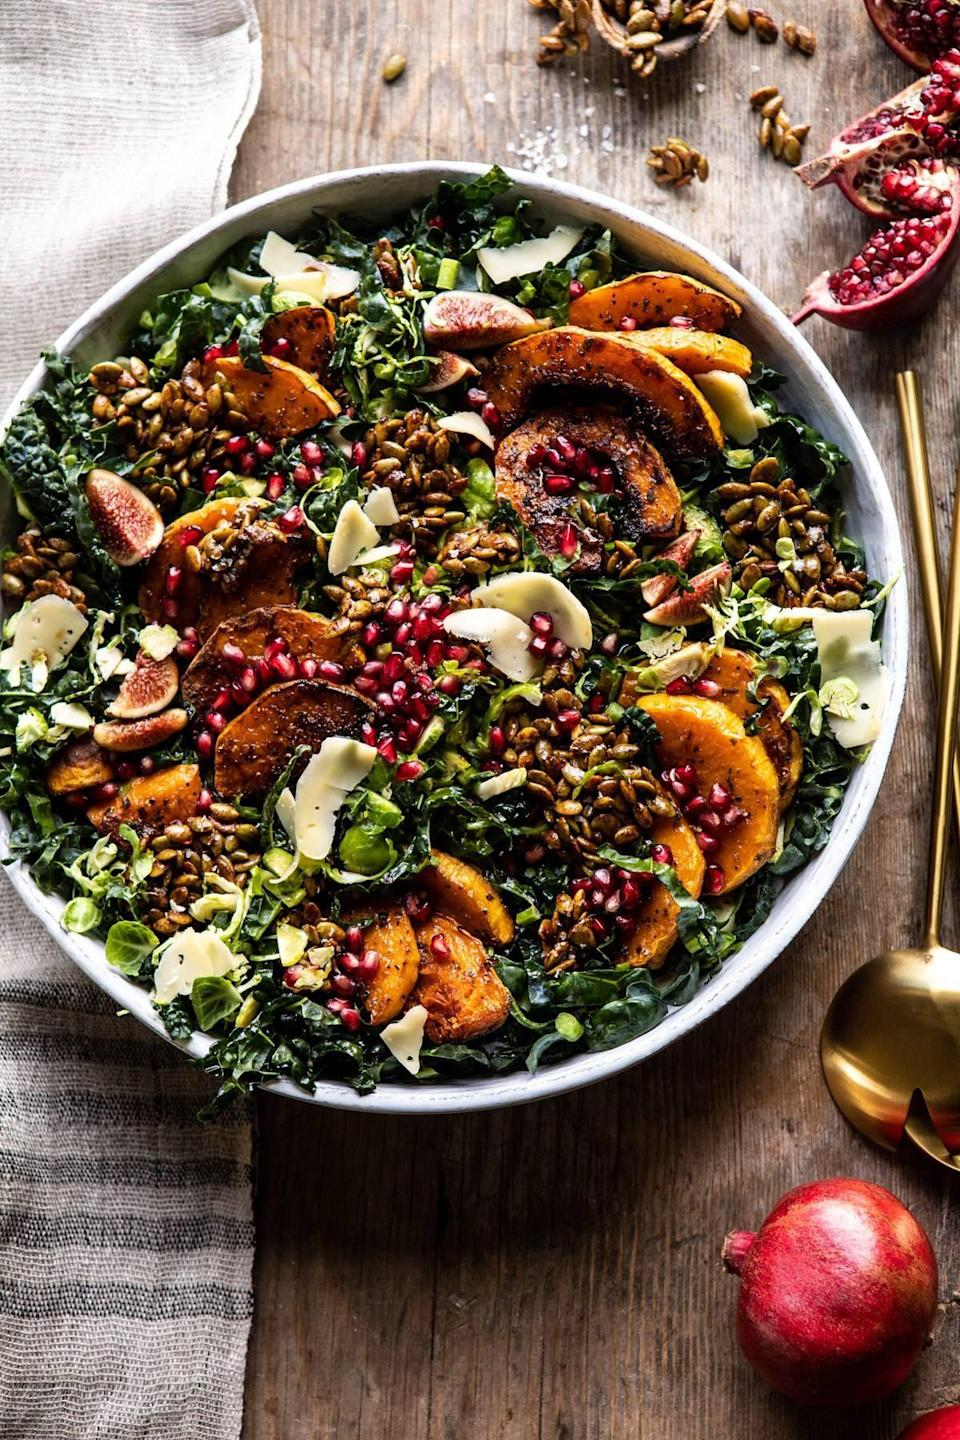 "<p>Step up your salad game with the help of this zesty recipe. You can expect to taste sweet butternut squash, roasted pumpkin seeds, shredded brussels sprouts, and tangy pomegranates when you bite into this elevated dish. </p> <p><strong>Get the recipe</strong>: <a href=""https://www.halfbakedharvest.com/roasted-butternut-squash-and-pomegranate-salad/"" class=""link rapid-noclick-resp"" rel=""nofollow noopener"" target=""_blank"" data-ylk=""slk:fall harvest roasted butternut squash and pomegranate salad"">fall harvest roasted butternut squash and pomegranate salad</a></p>"